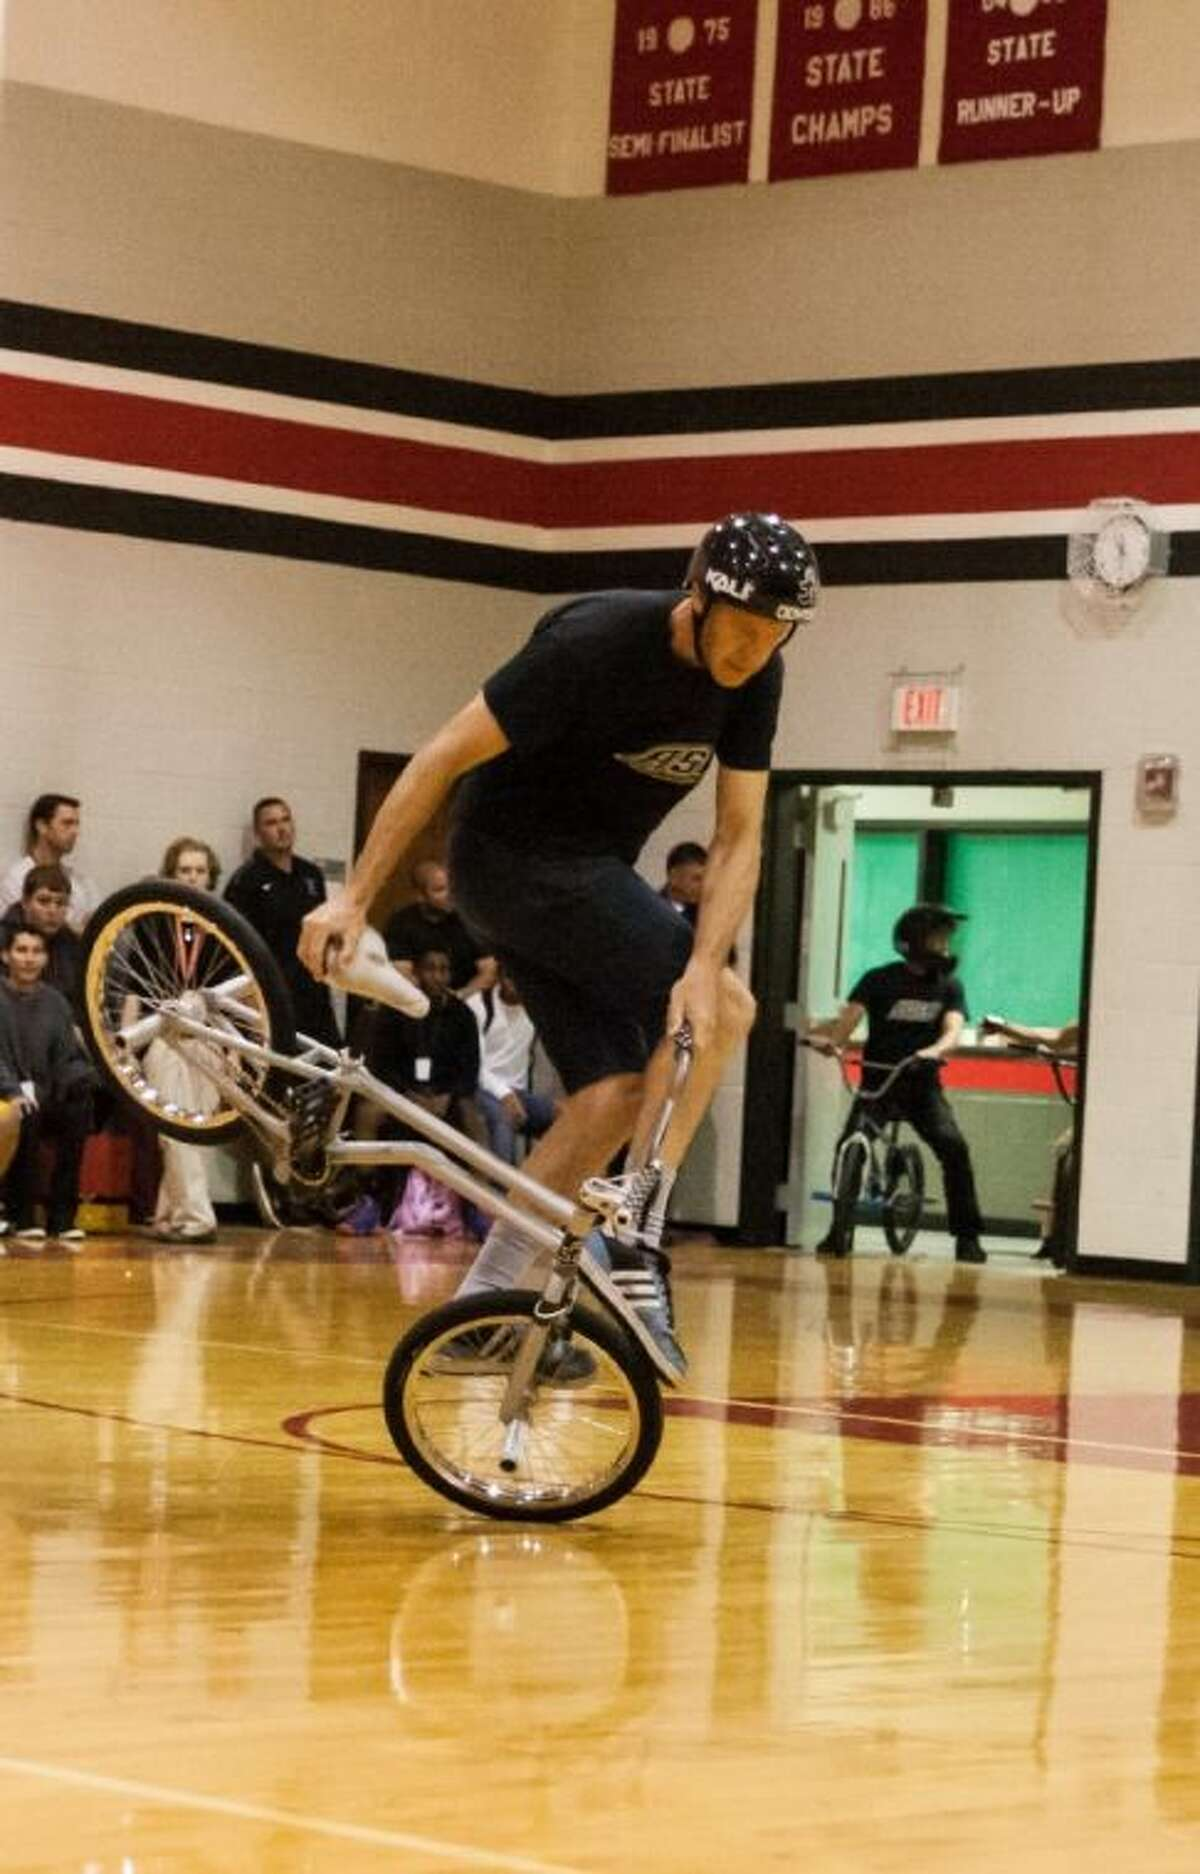 Trevor Meyer shows off his BMX street skills at the ASA High School Tour stop in Cleveland on Oct. 30, 2013.